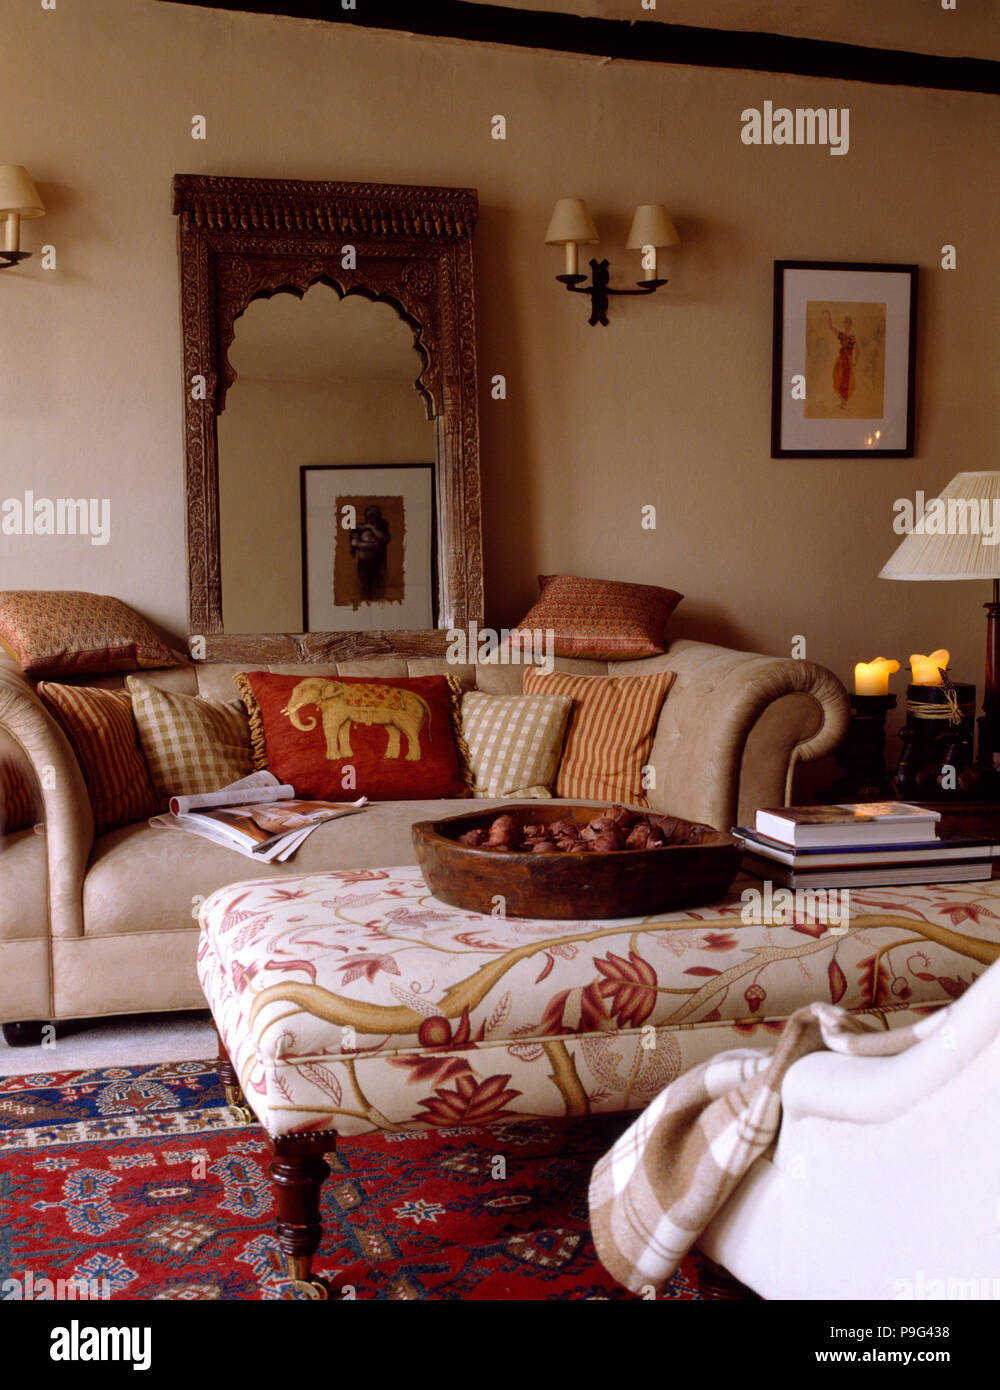 Carved Wooden Indian Mirror Above Beige Sofa With Patterned Cushions